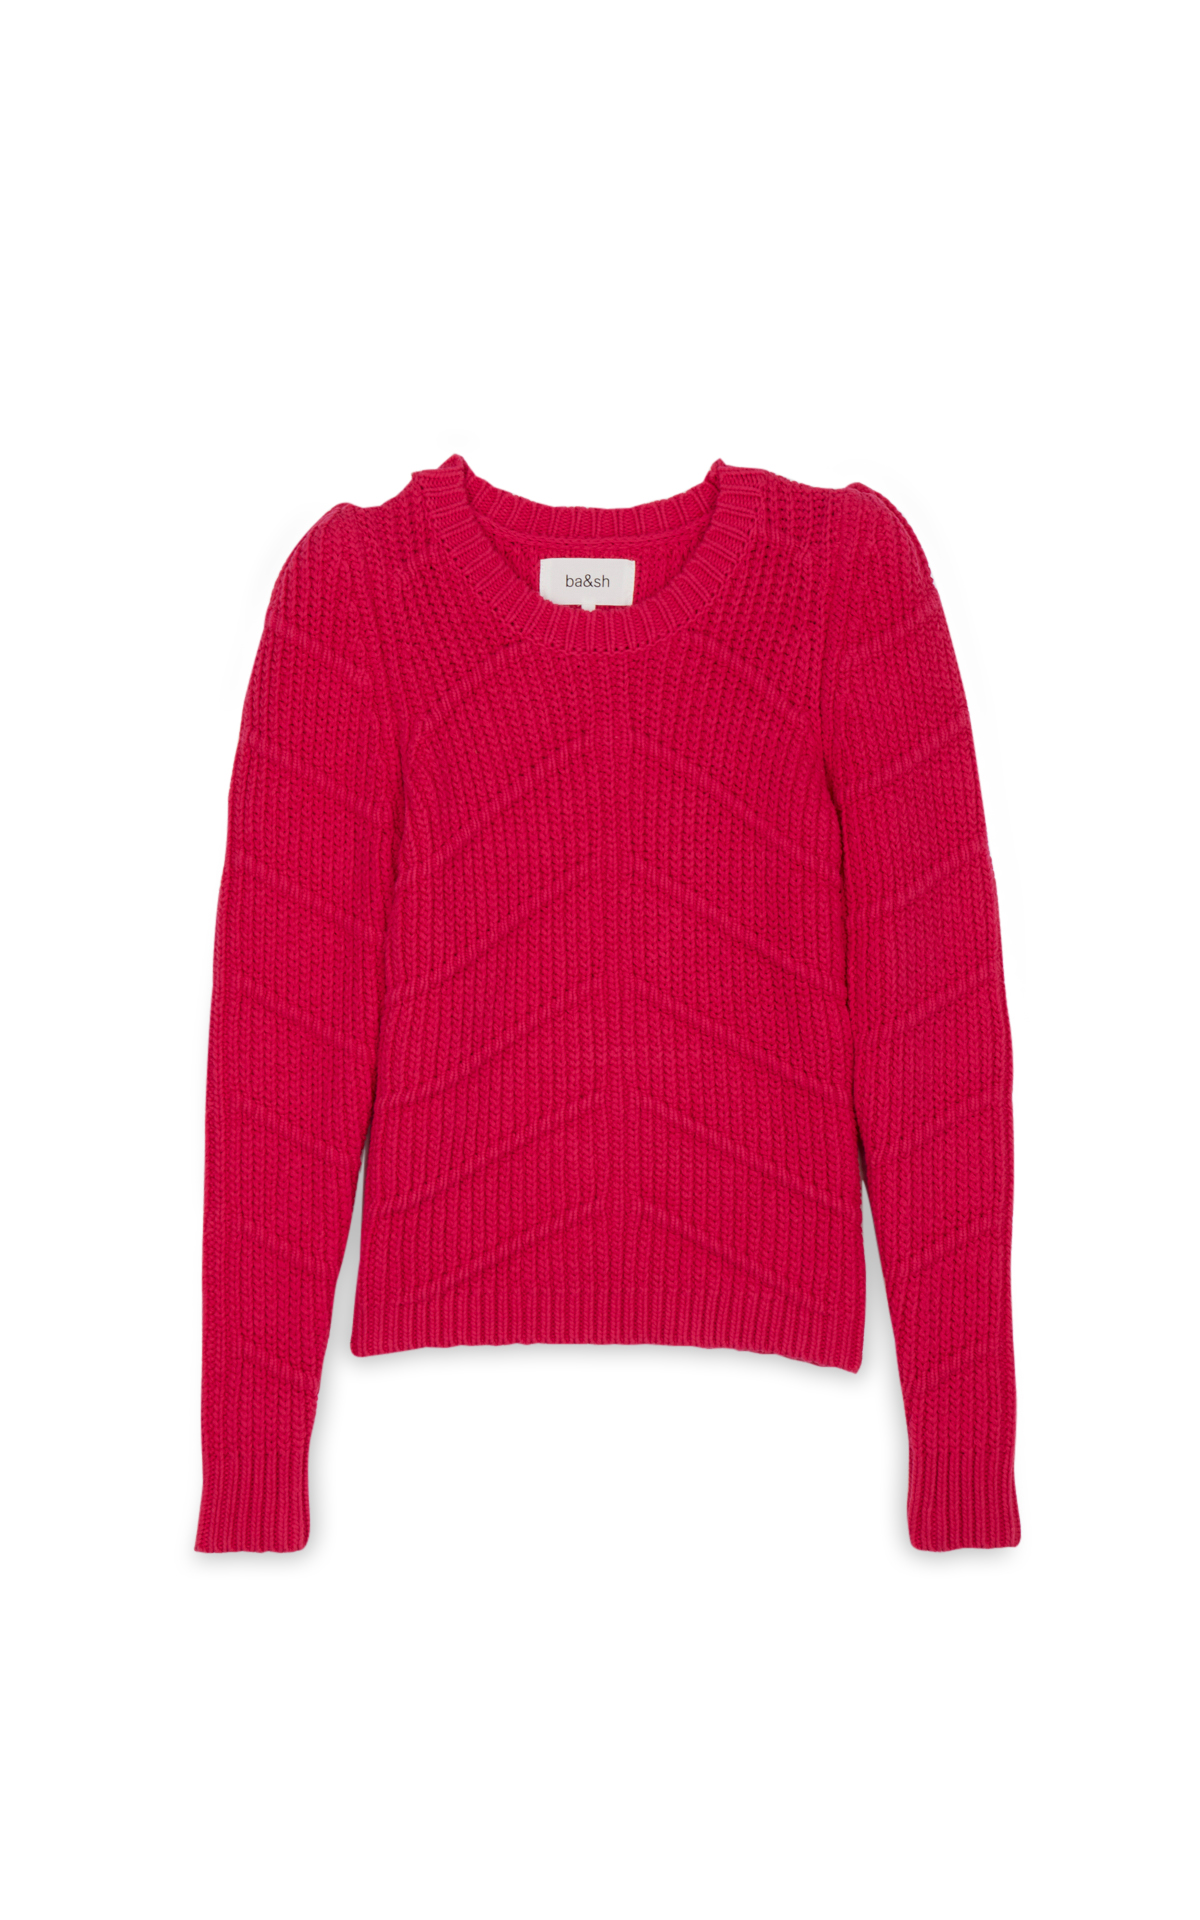 La Vallée Village ba&sh Fushia Dabnex jumper